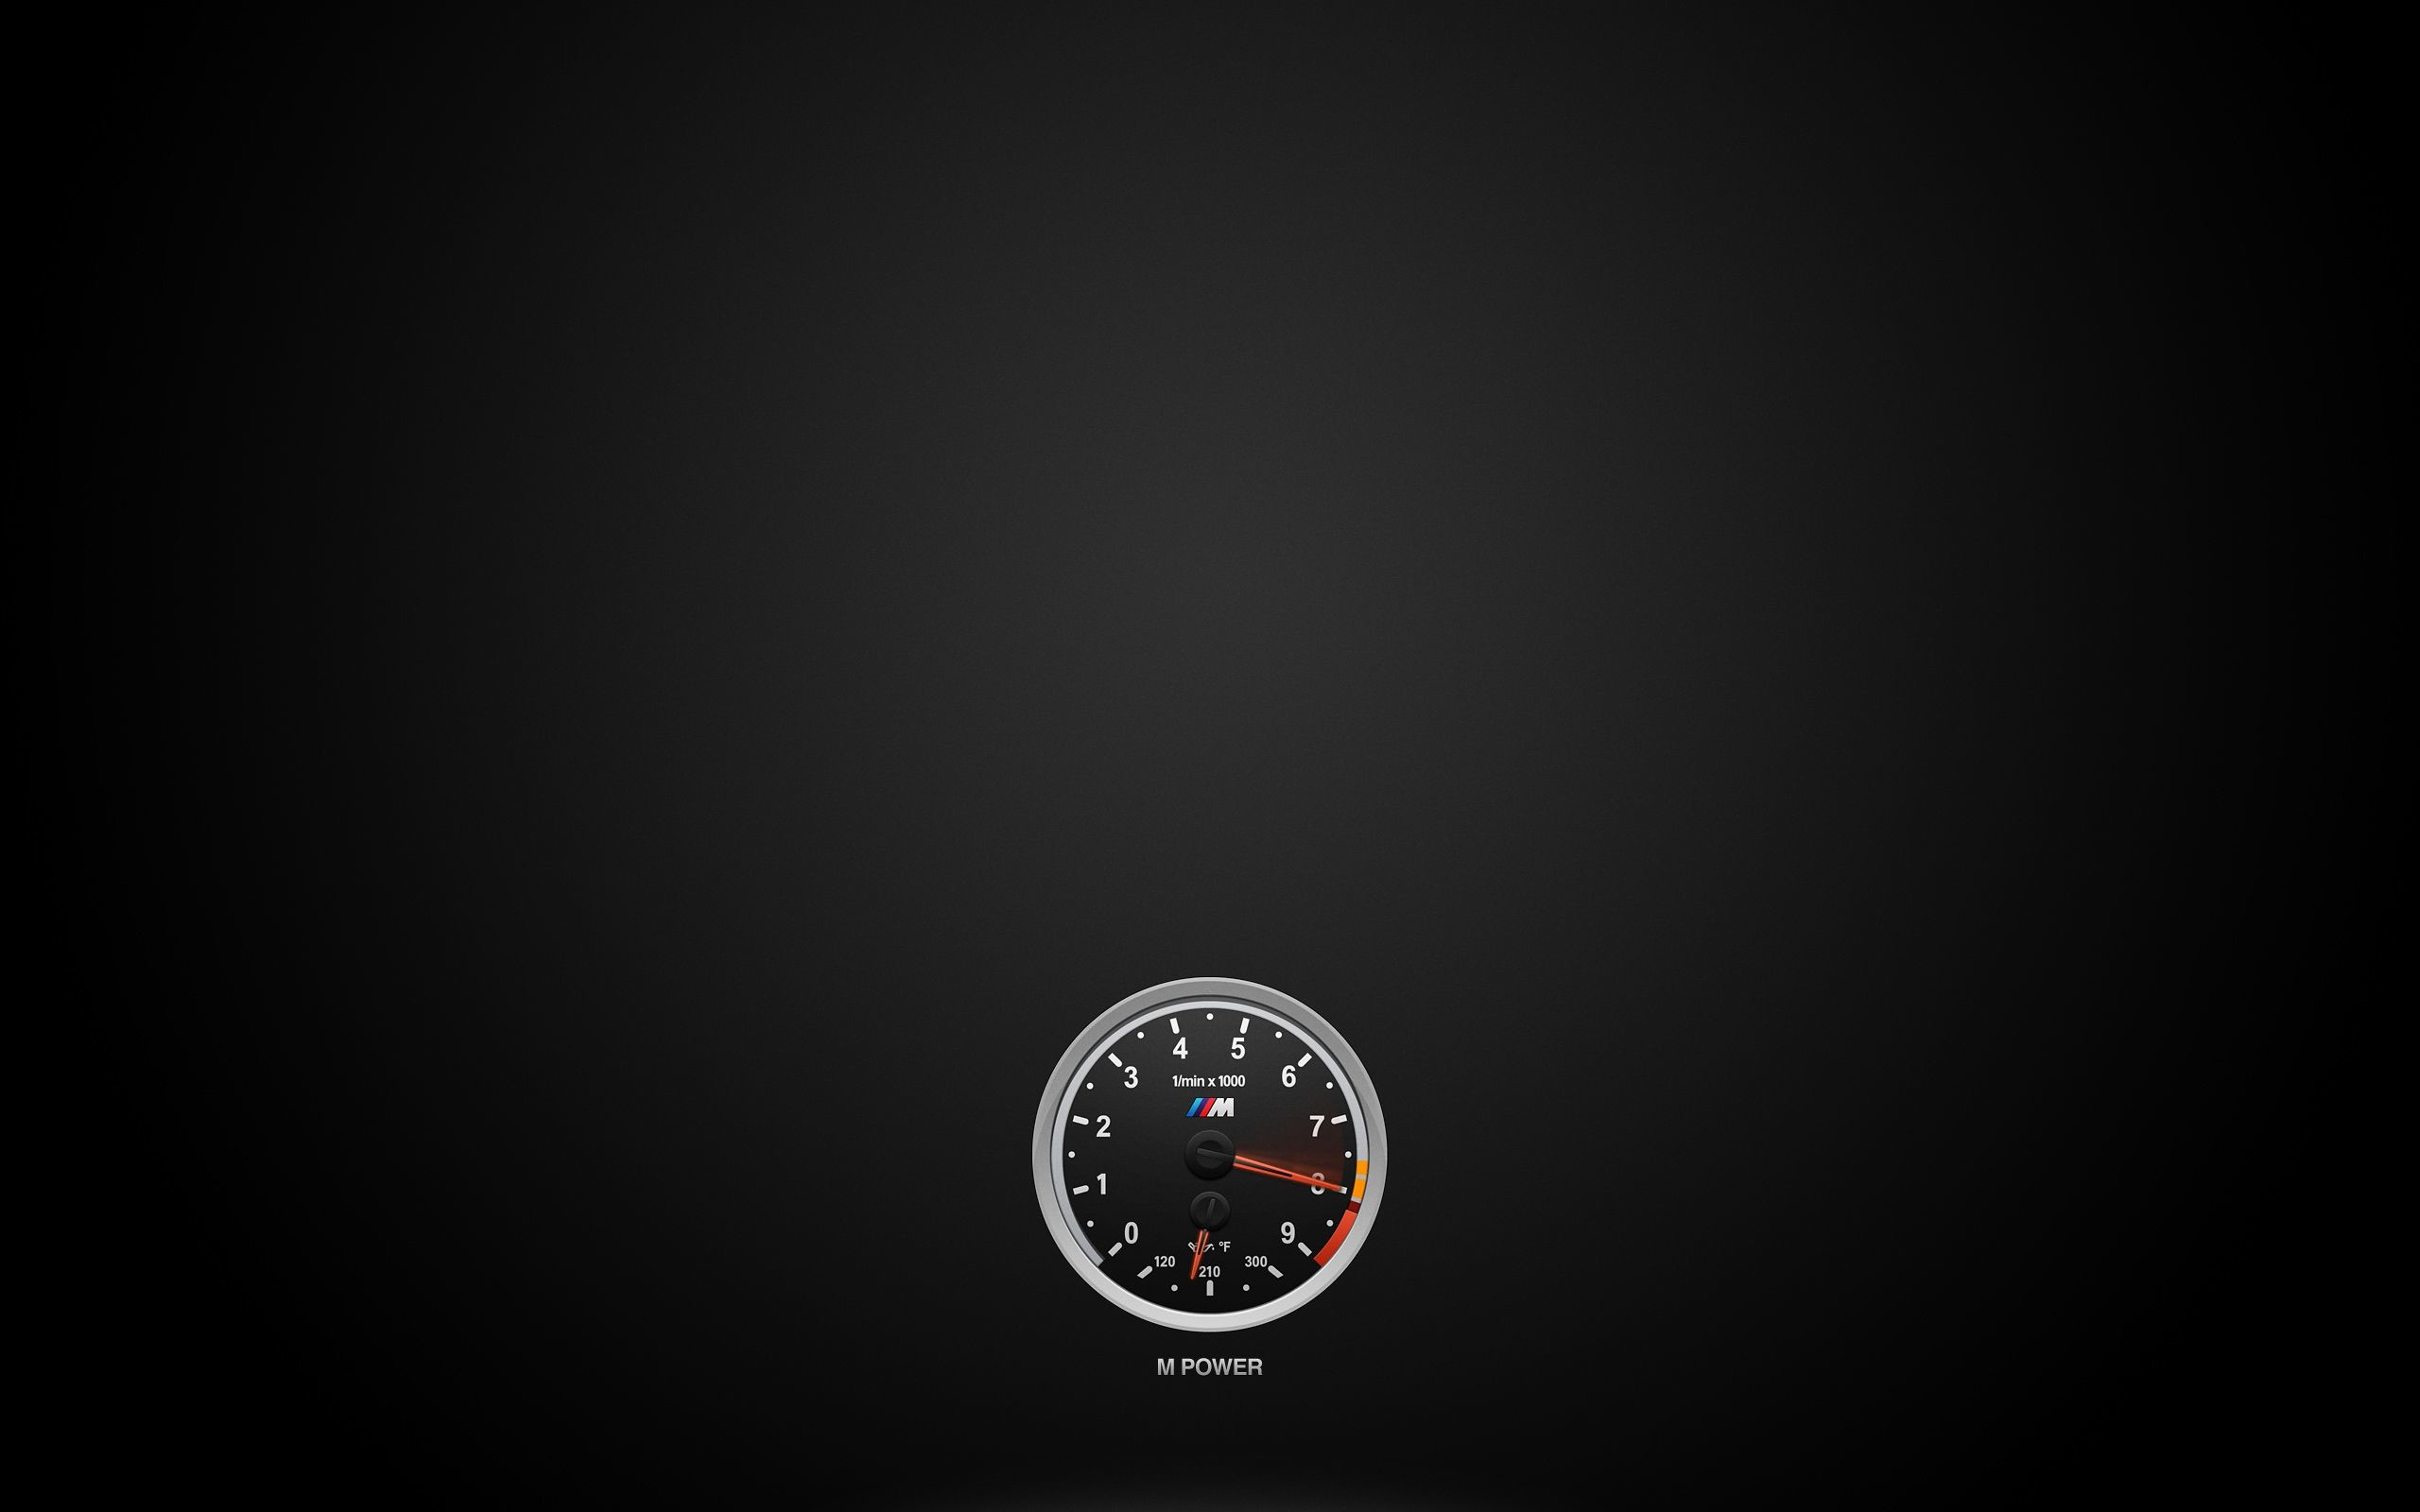 2560x1600 BMW M Logo Wallpapers - Wallpaper Cave